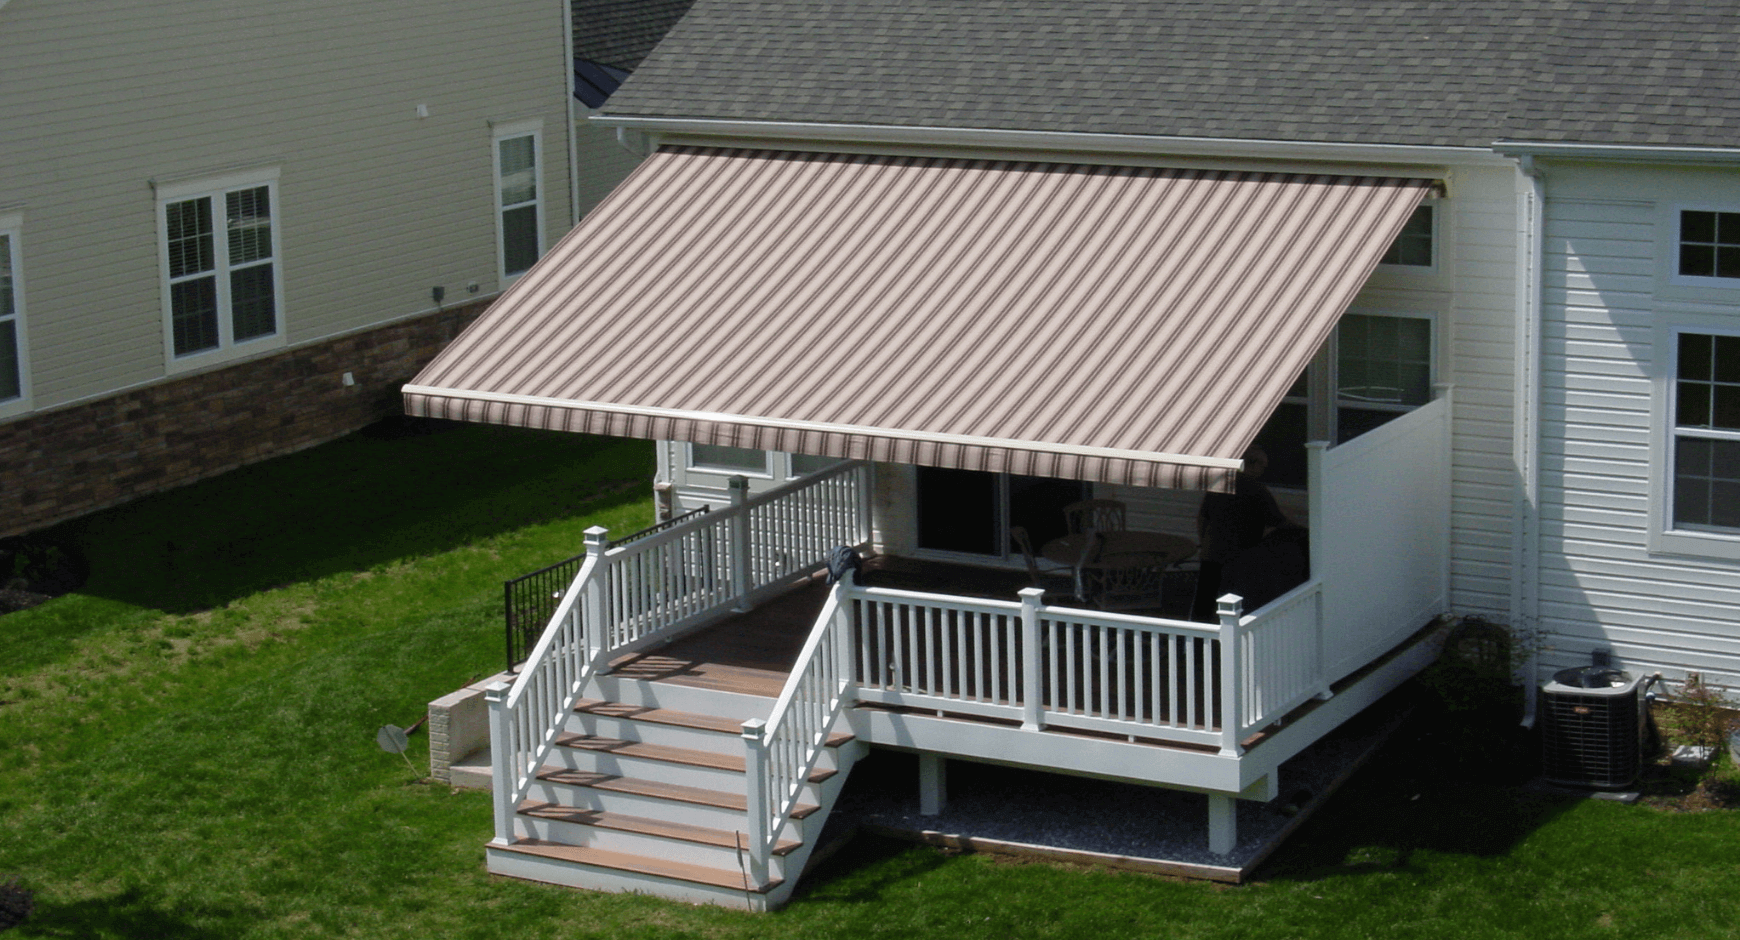 Bird's eye view of a retractable awning